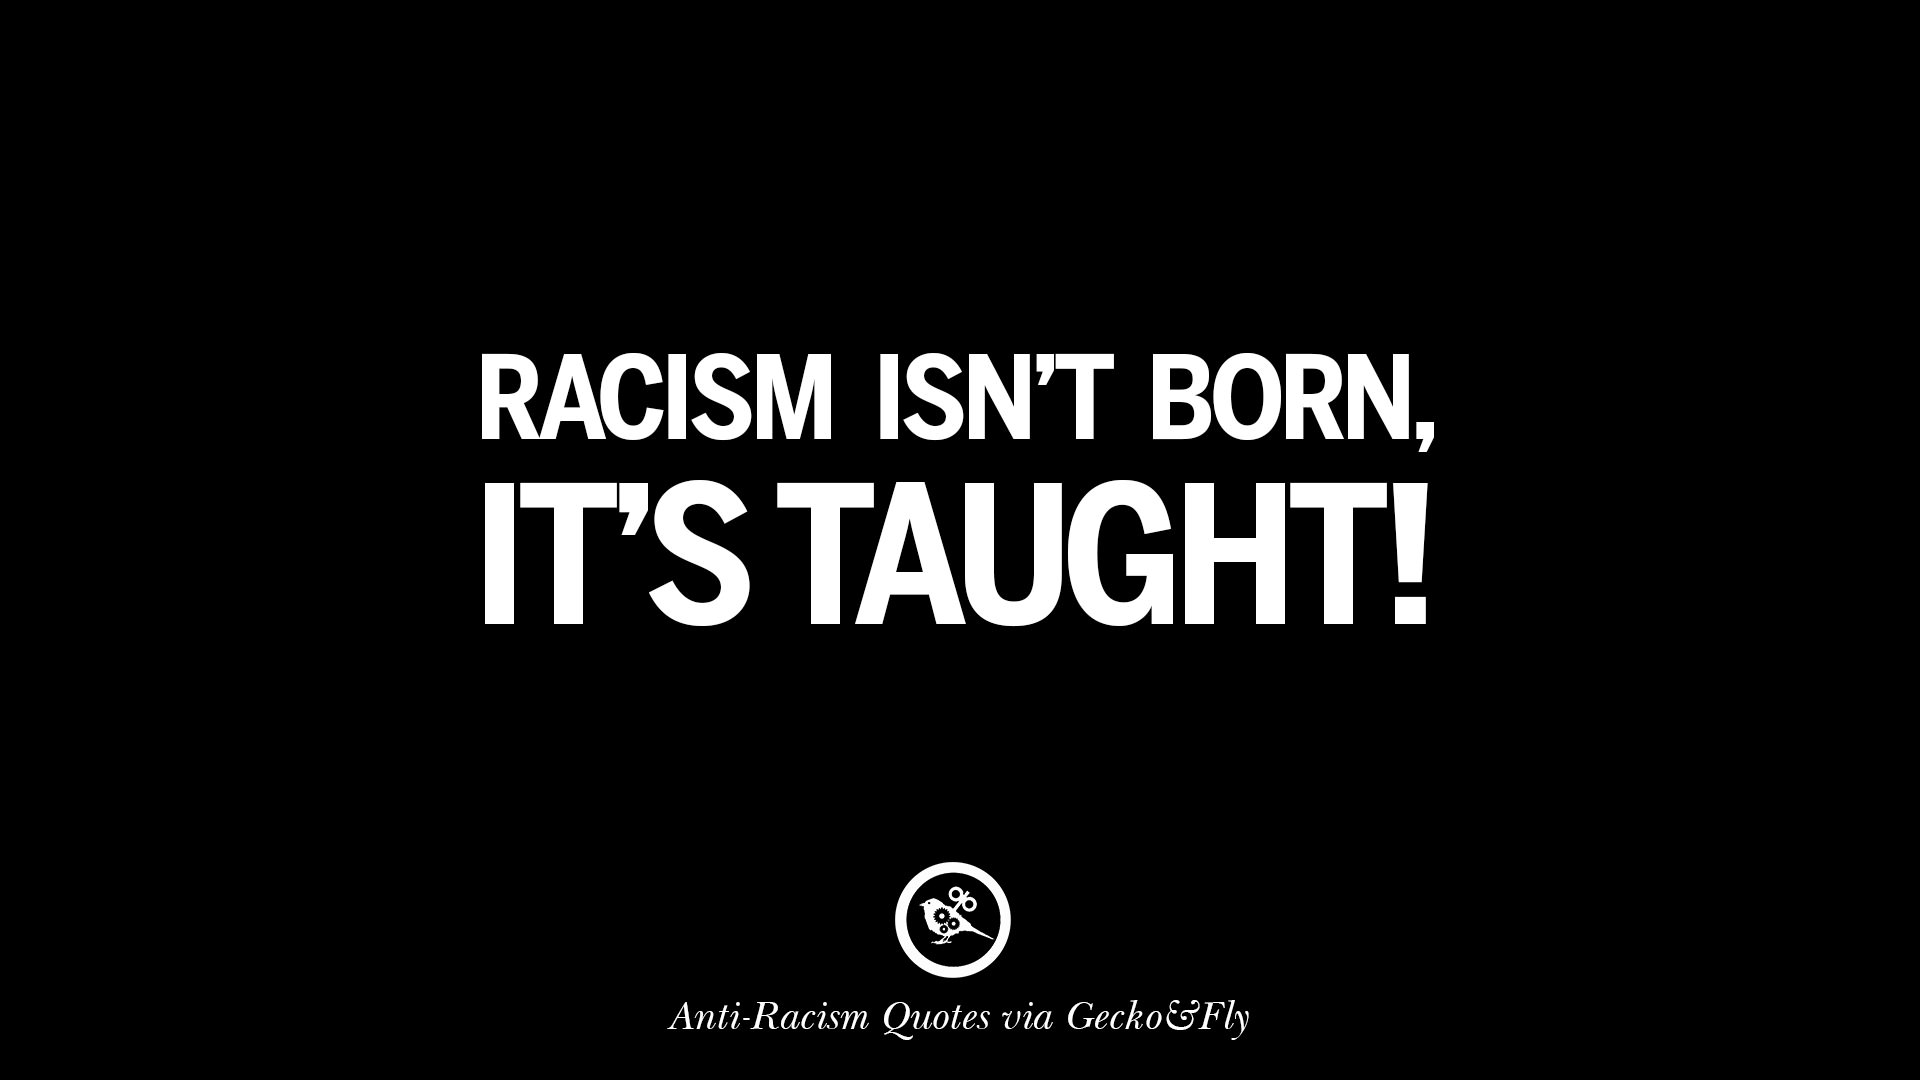 Racist Quotes 16 Quotes About Anti Racism And Against Racial Discrimination .